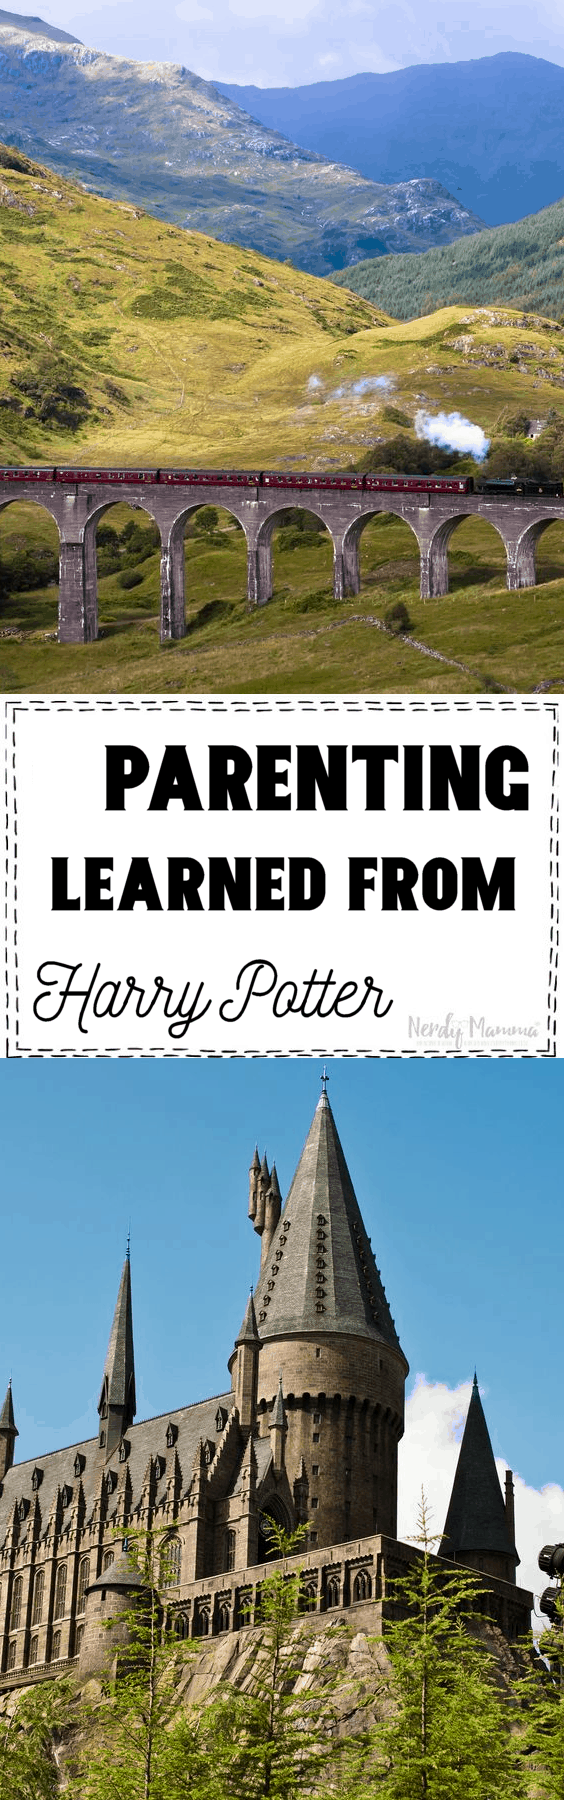 As fans of the Harry Potter series are aware, The Boy Who Lived grew up without ever knowing his parents. Nevertheless, he encounters several mentor figures throughout the series that offer him bits of advice he may have missed out on while living with the Dursleys. Here are a few pieces of parental advice that Harry hears throughout the series.